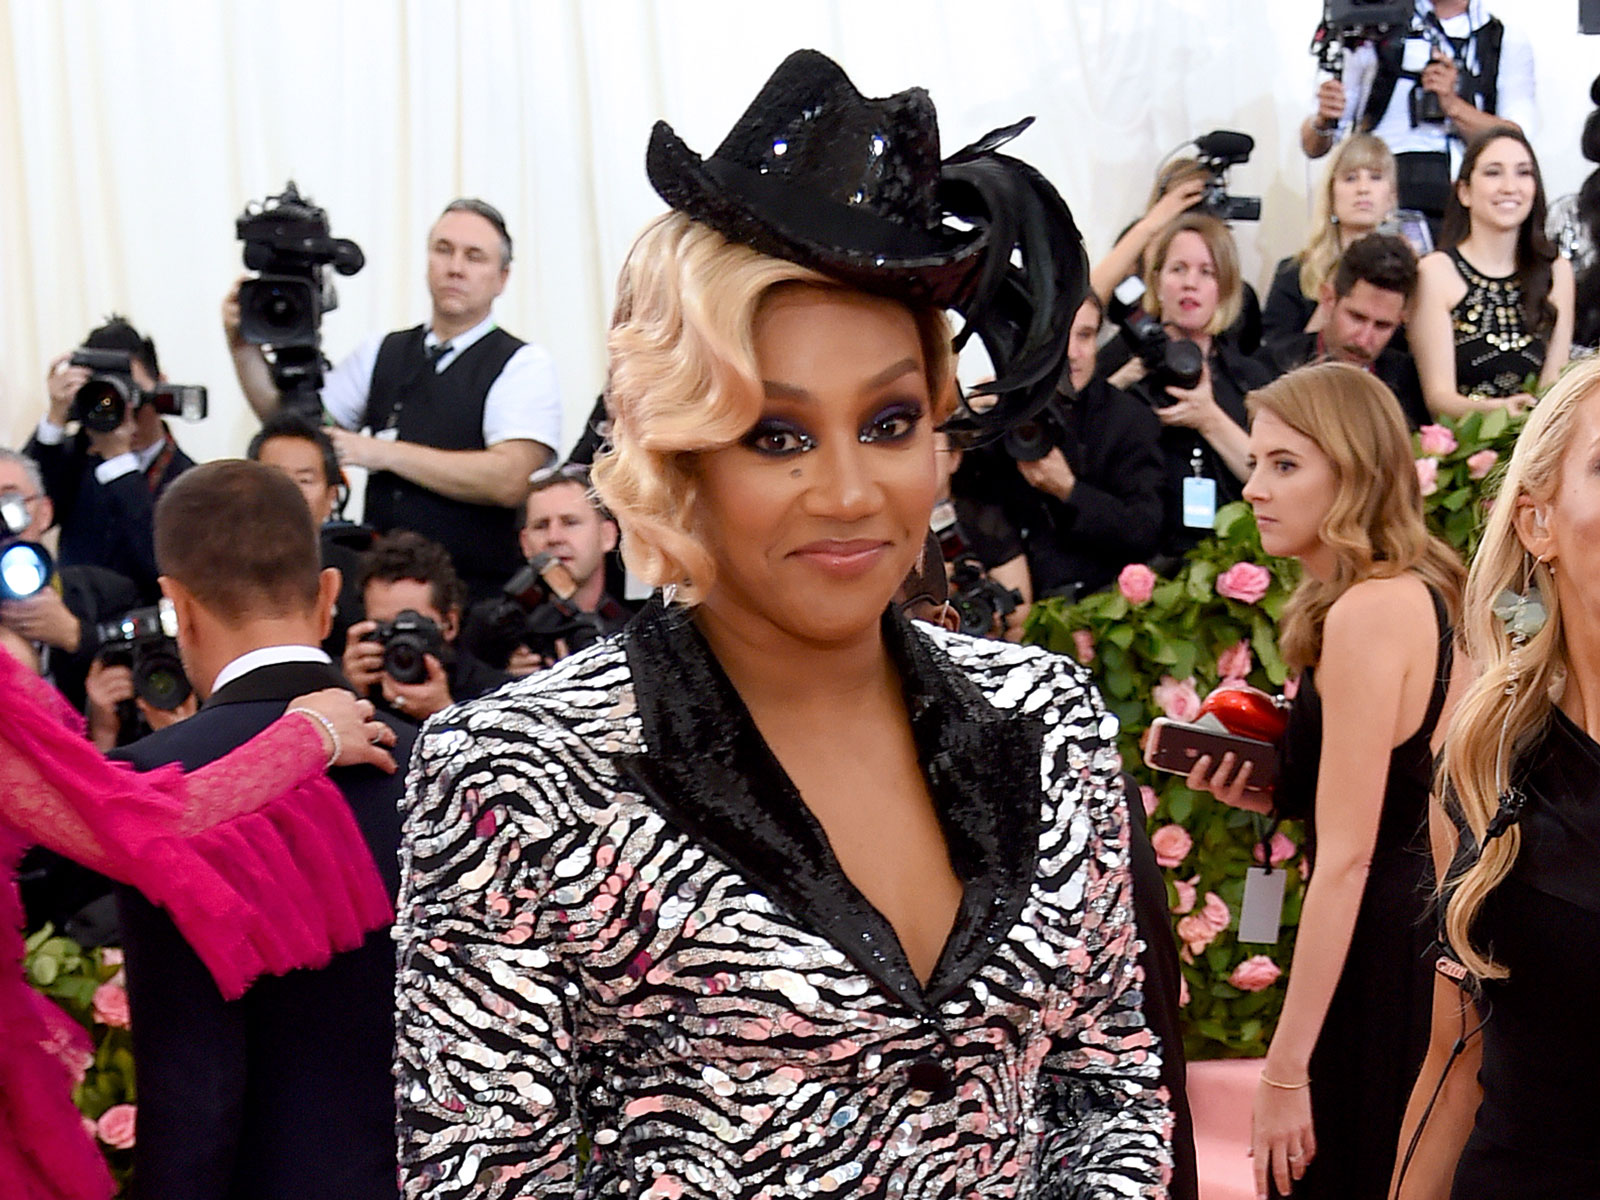 Tiffany Haddish Cooked Herself Chicken and Stuffed It In Her Purse Before the 2019 Met Gala